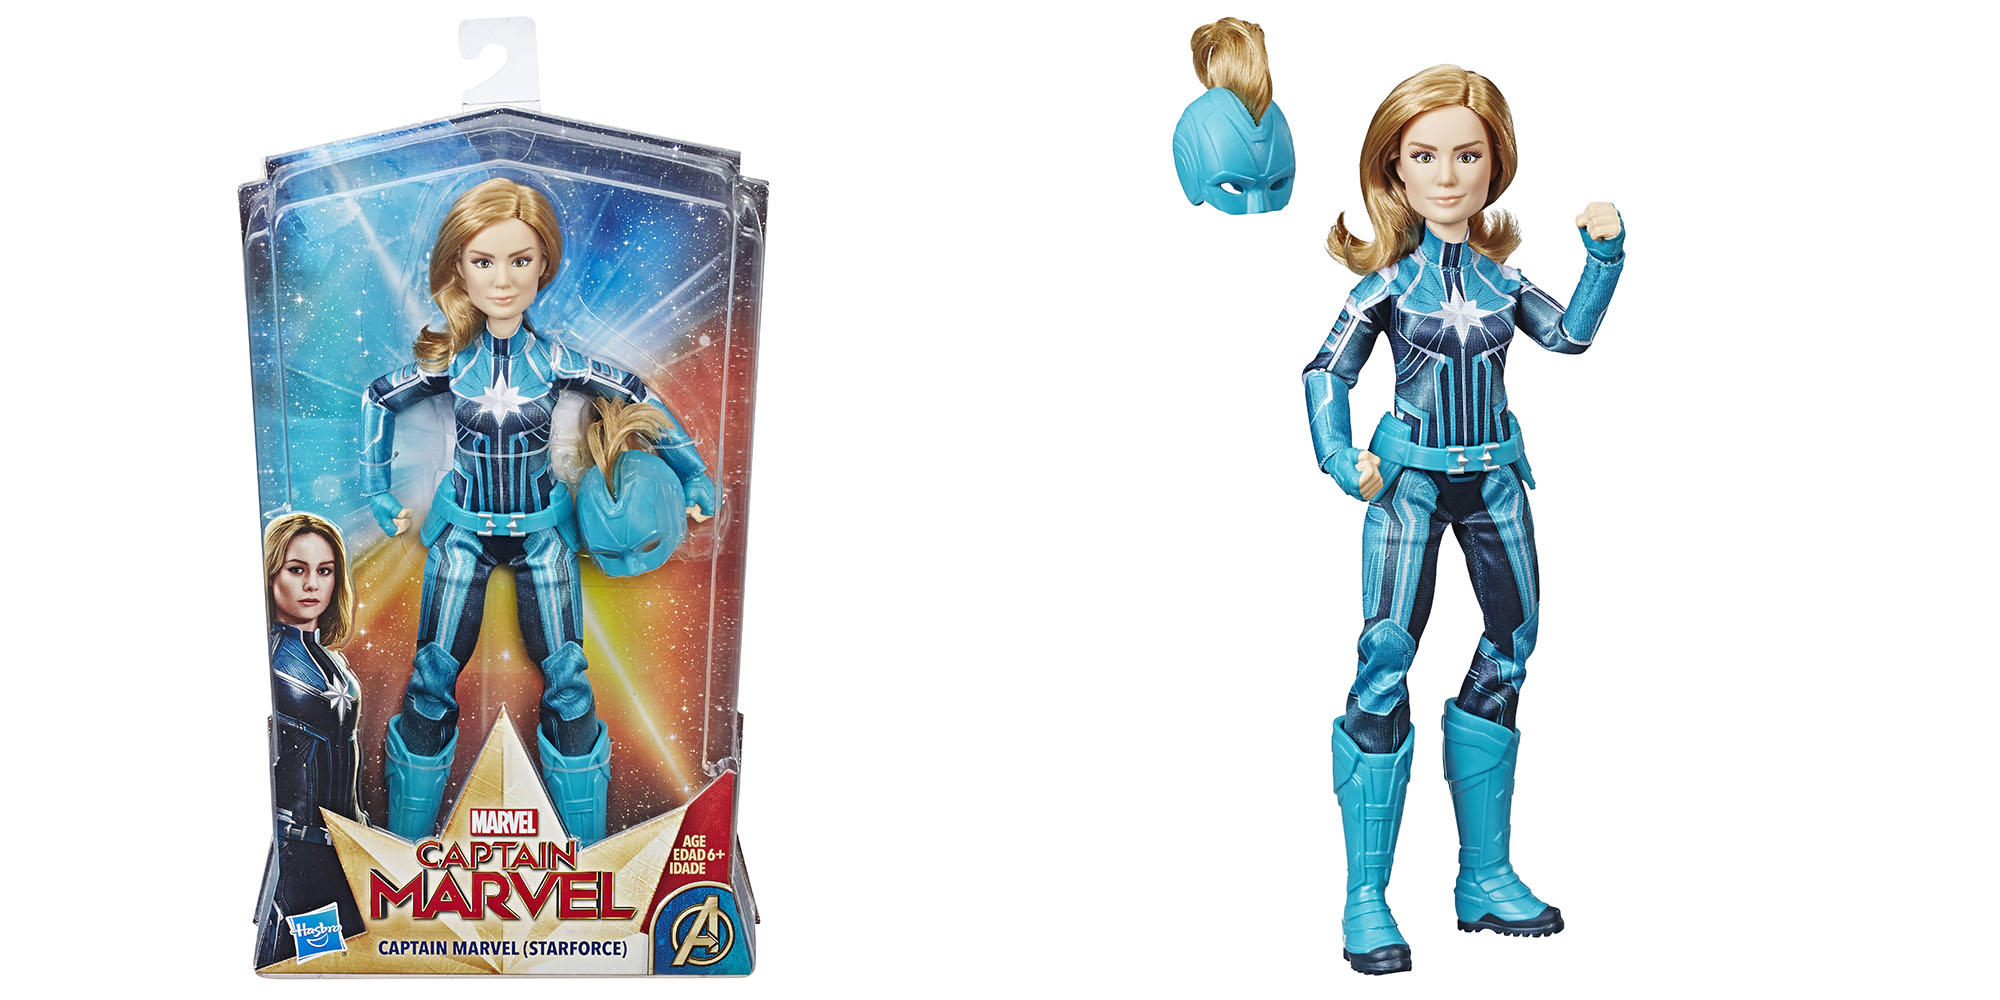 """CAPTAIN MARVEL"" MOVIE CAPTAIN MARVEL (STARFORCE) DOLL WITH HELMET"